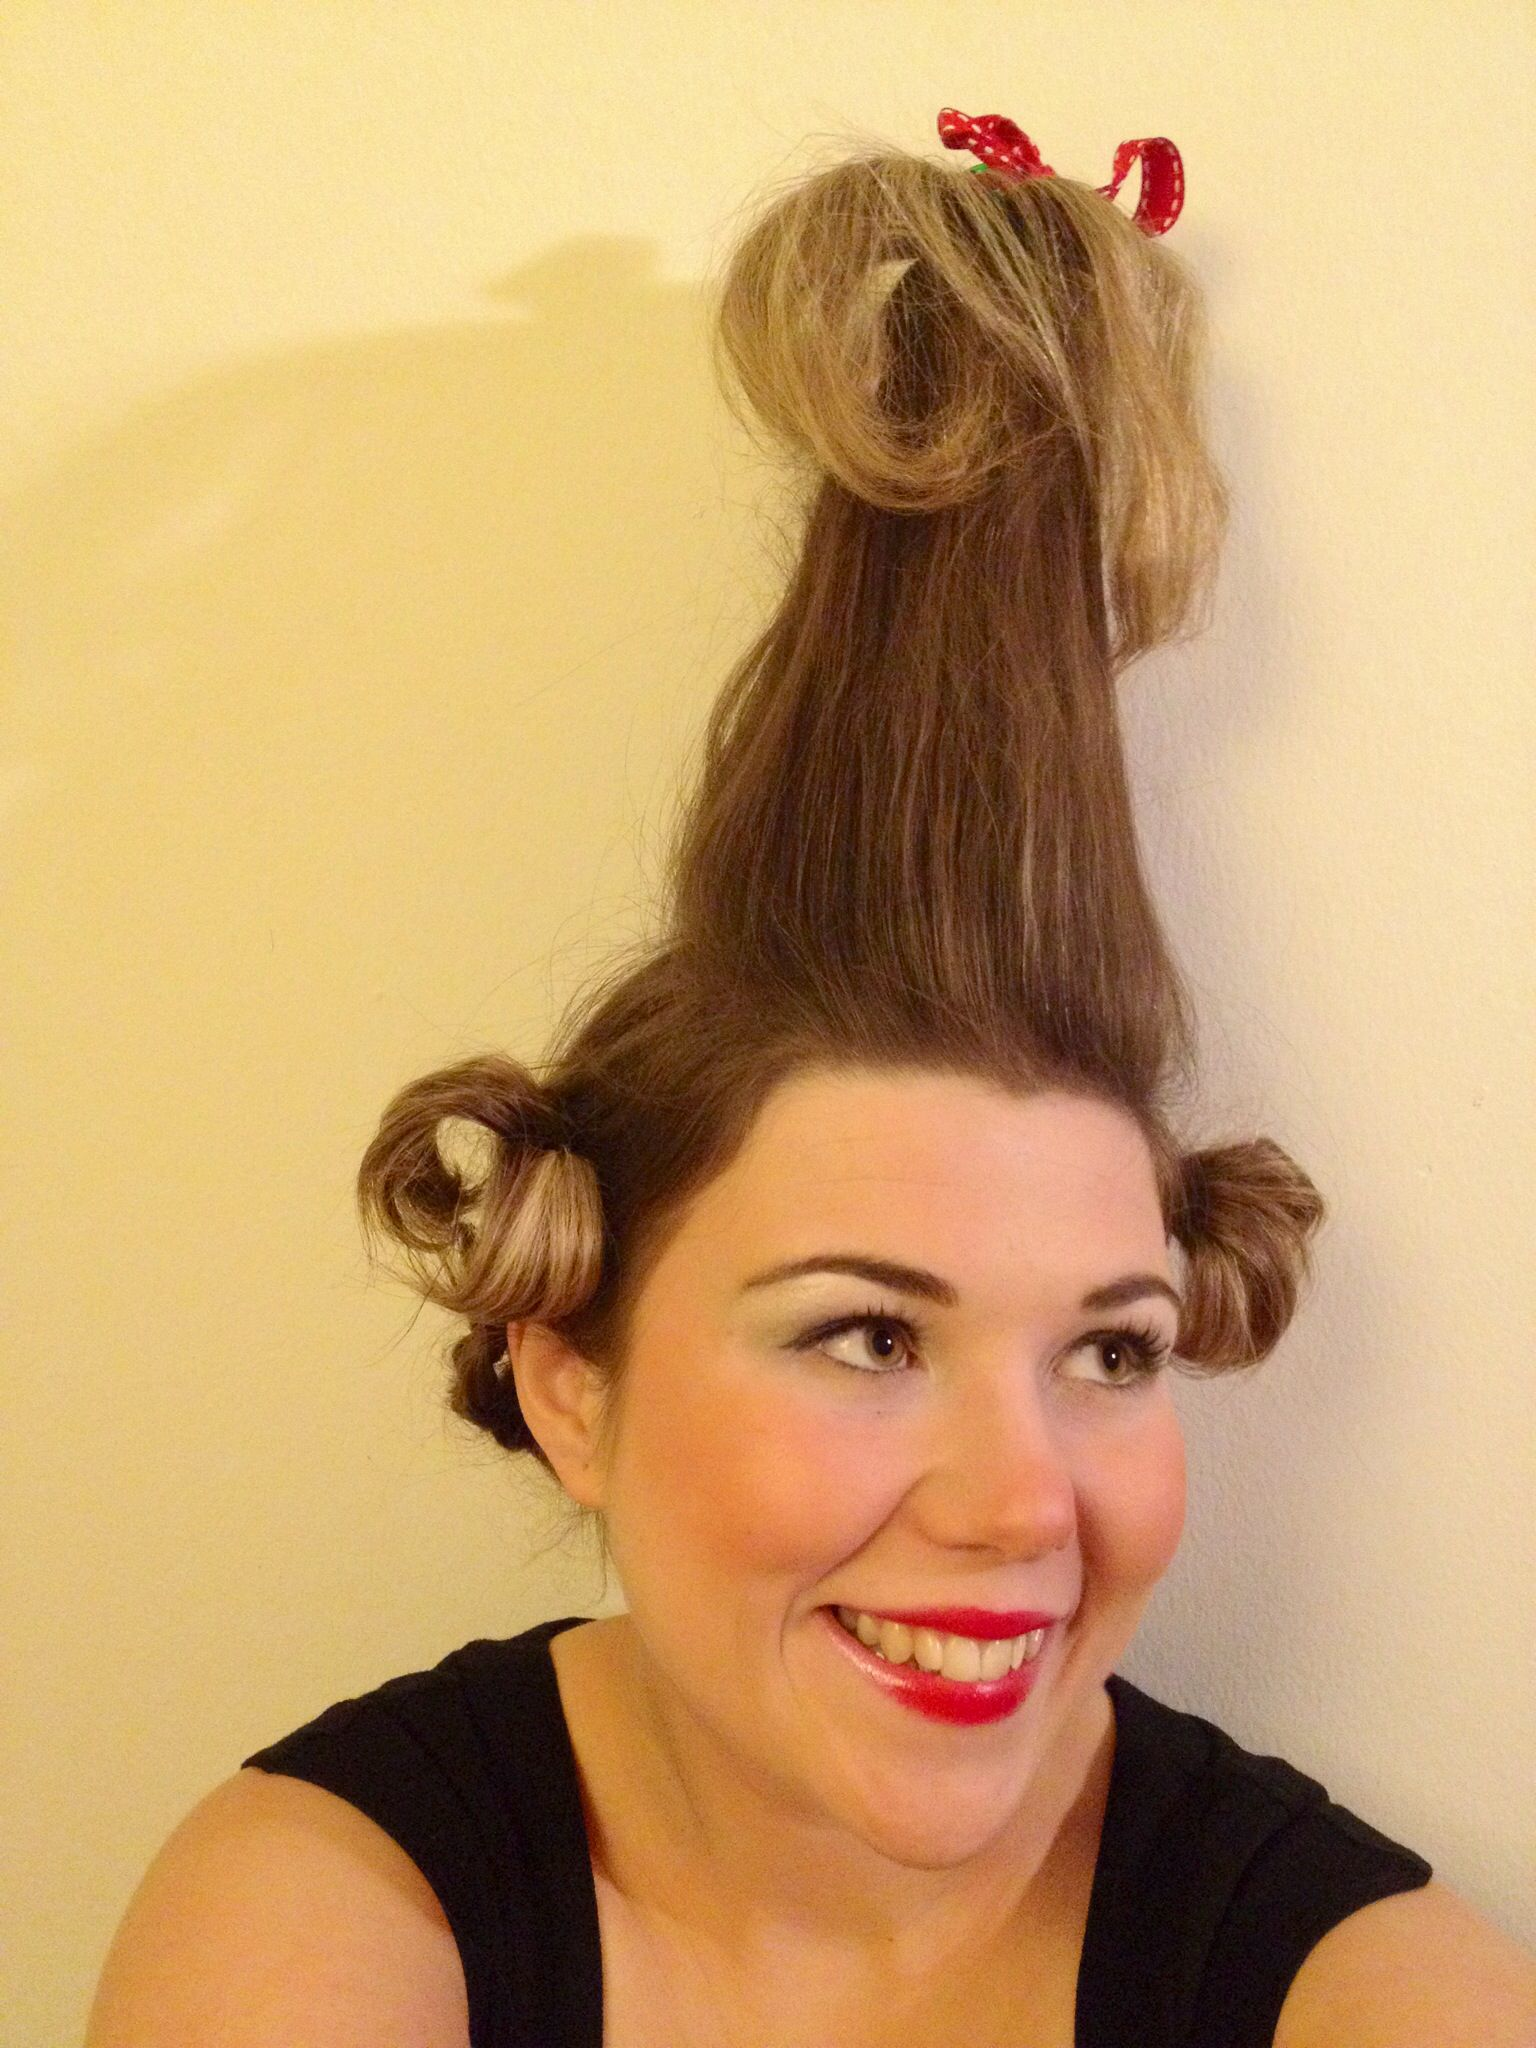 How to make your own grinch costume - Cindy Lou Who From The Grinch Hair Makeup